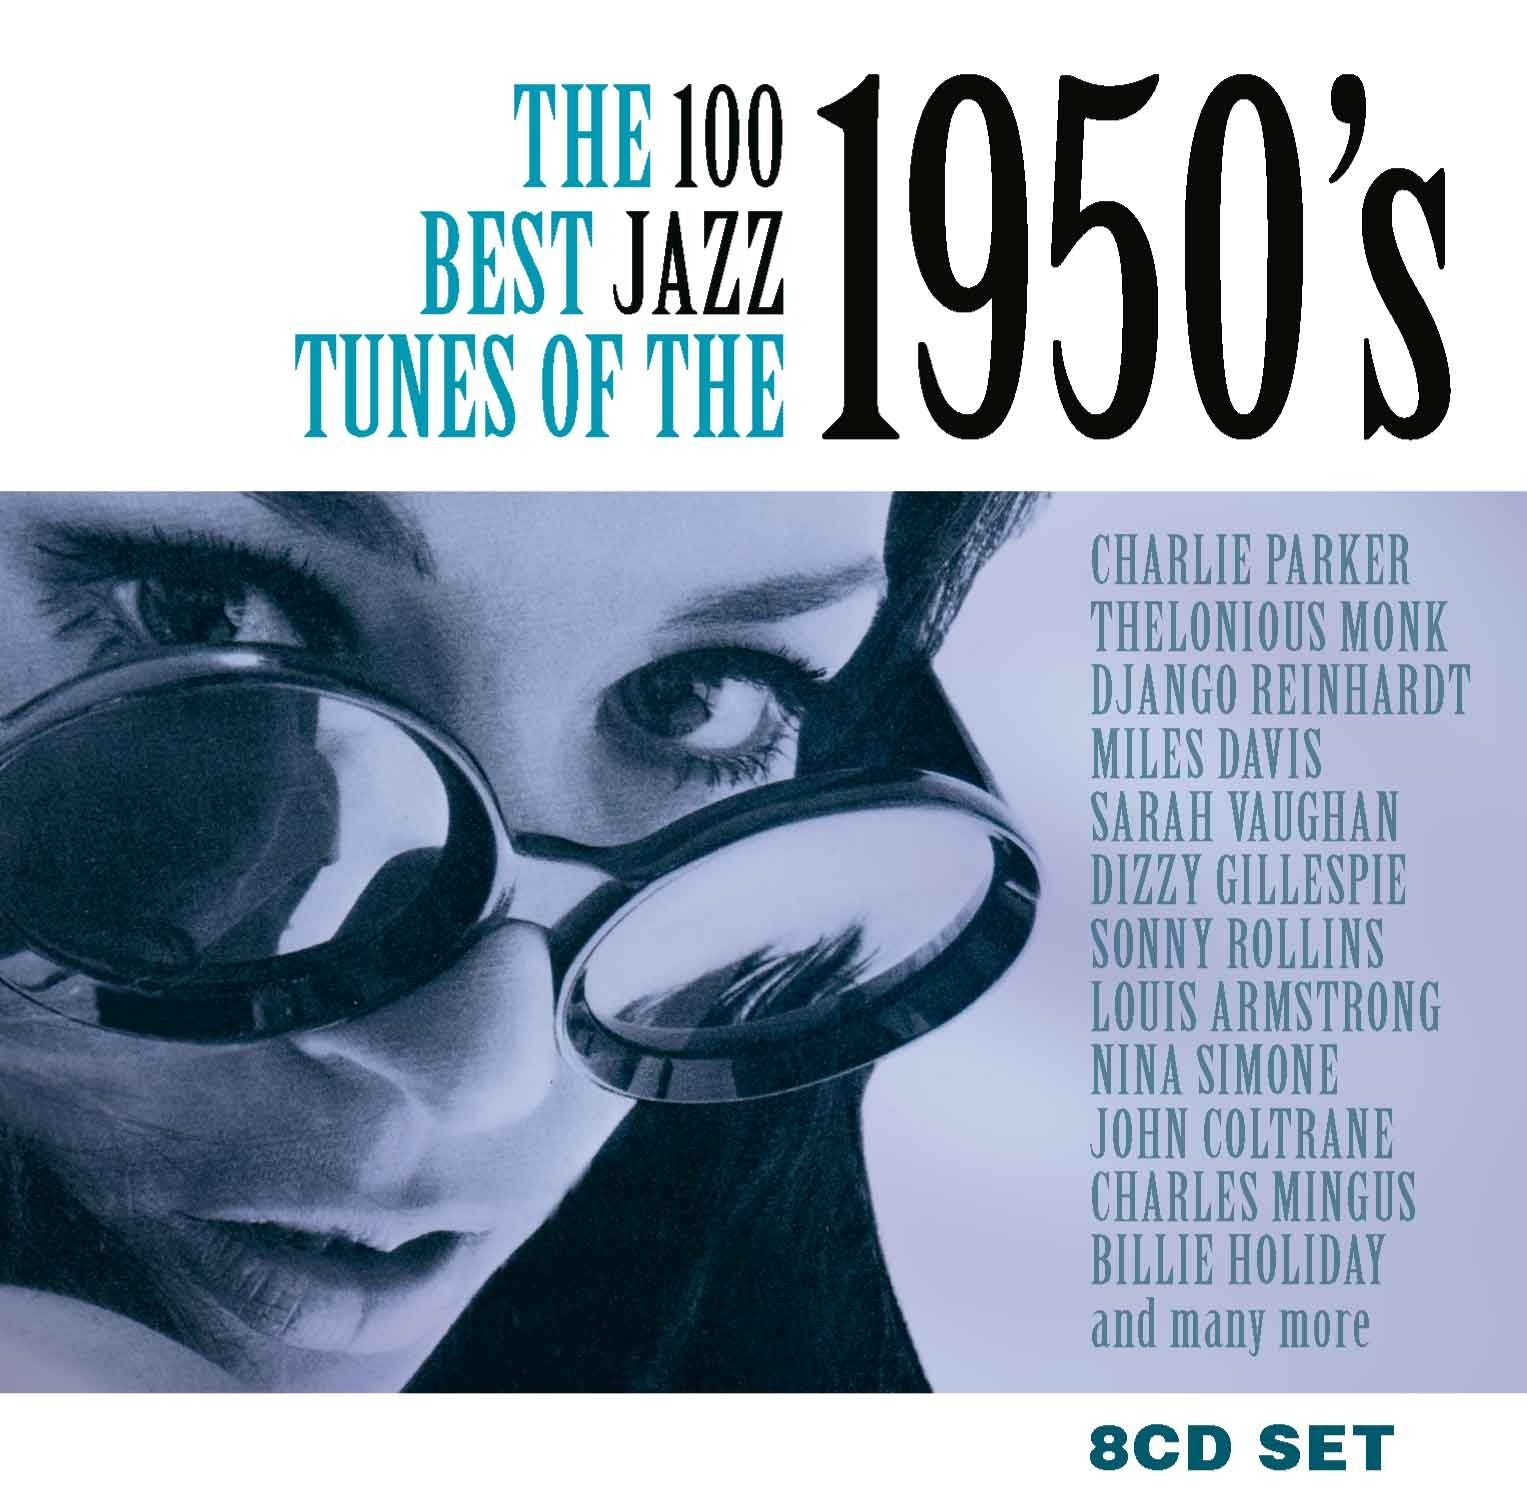 100 Best Jazz Tunes of the 1950s by Chrome Dreams